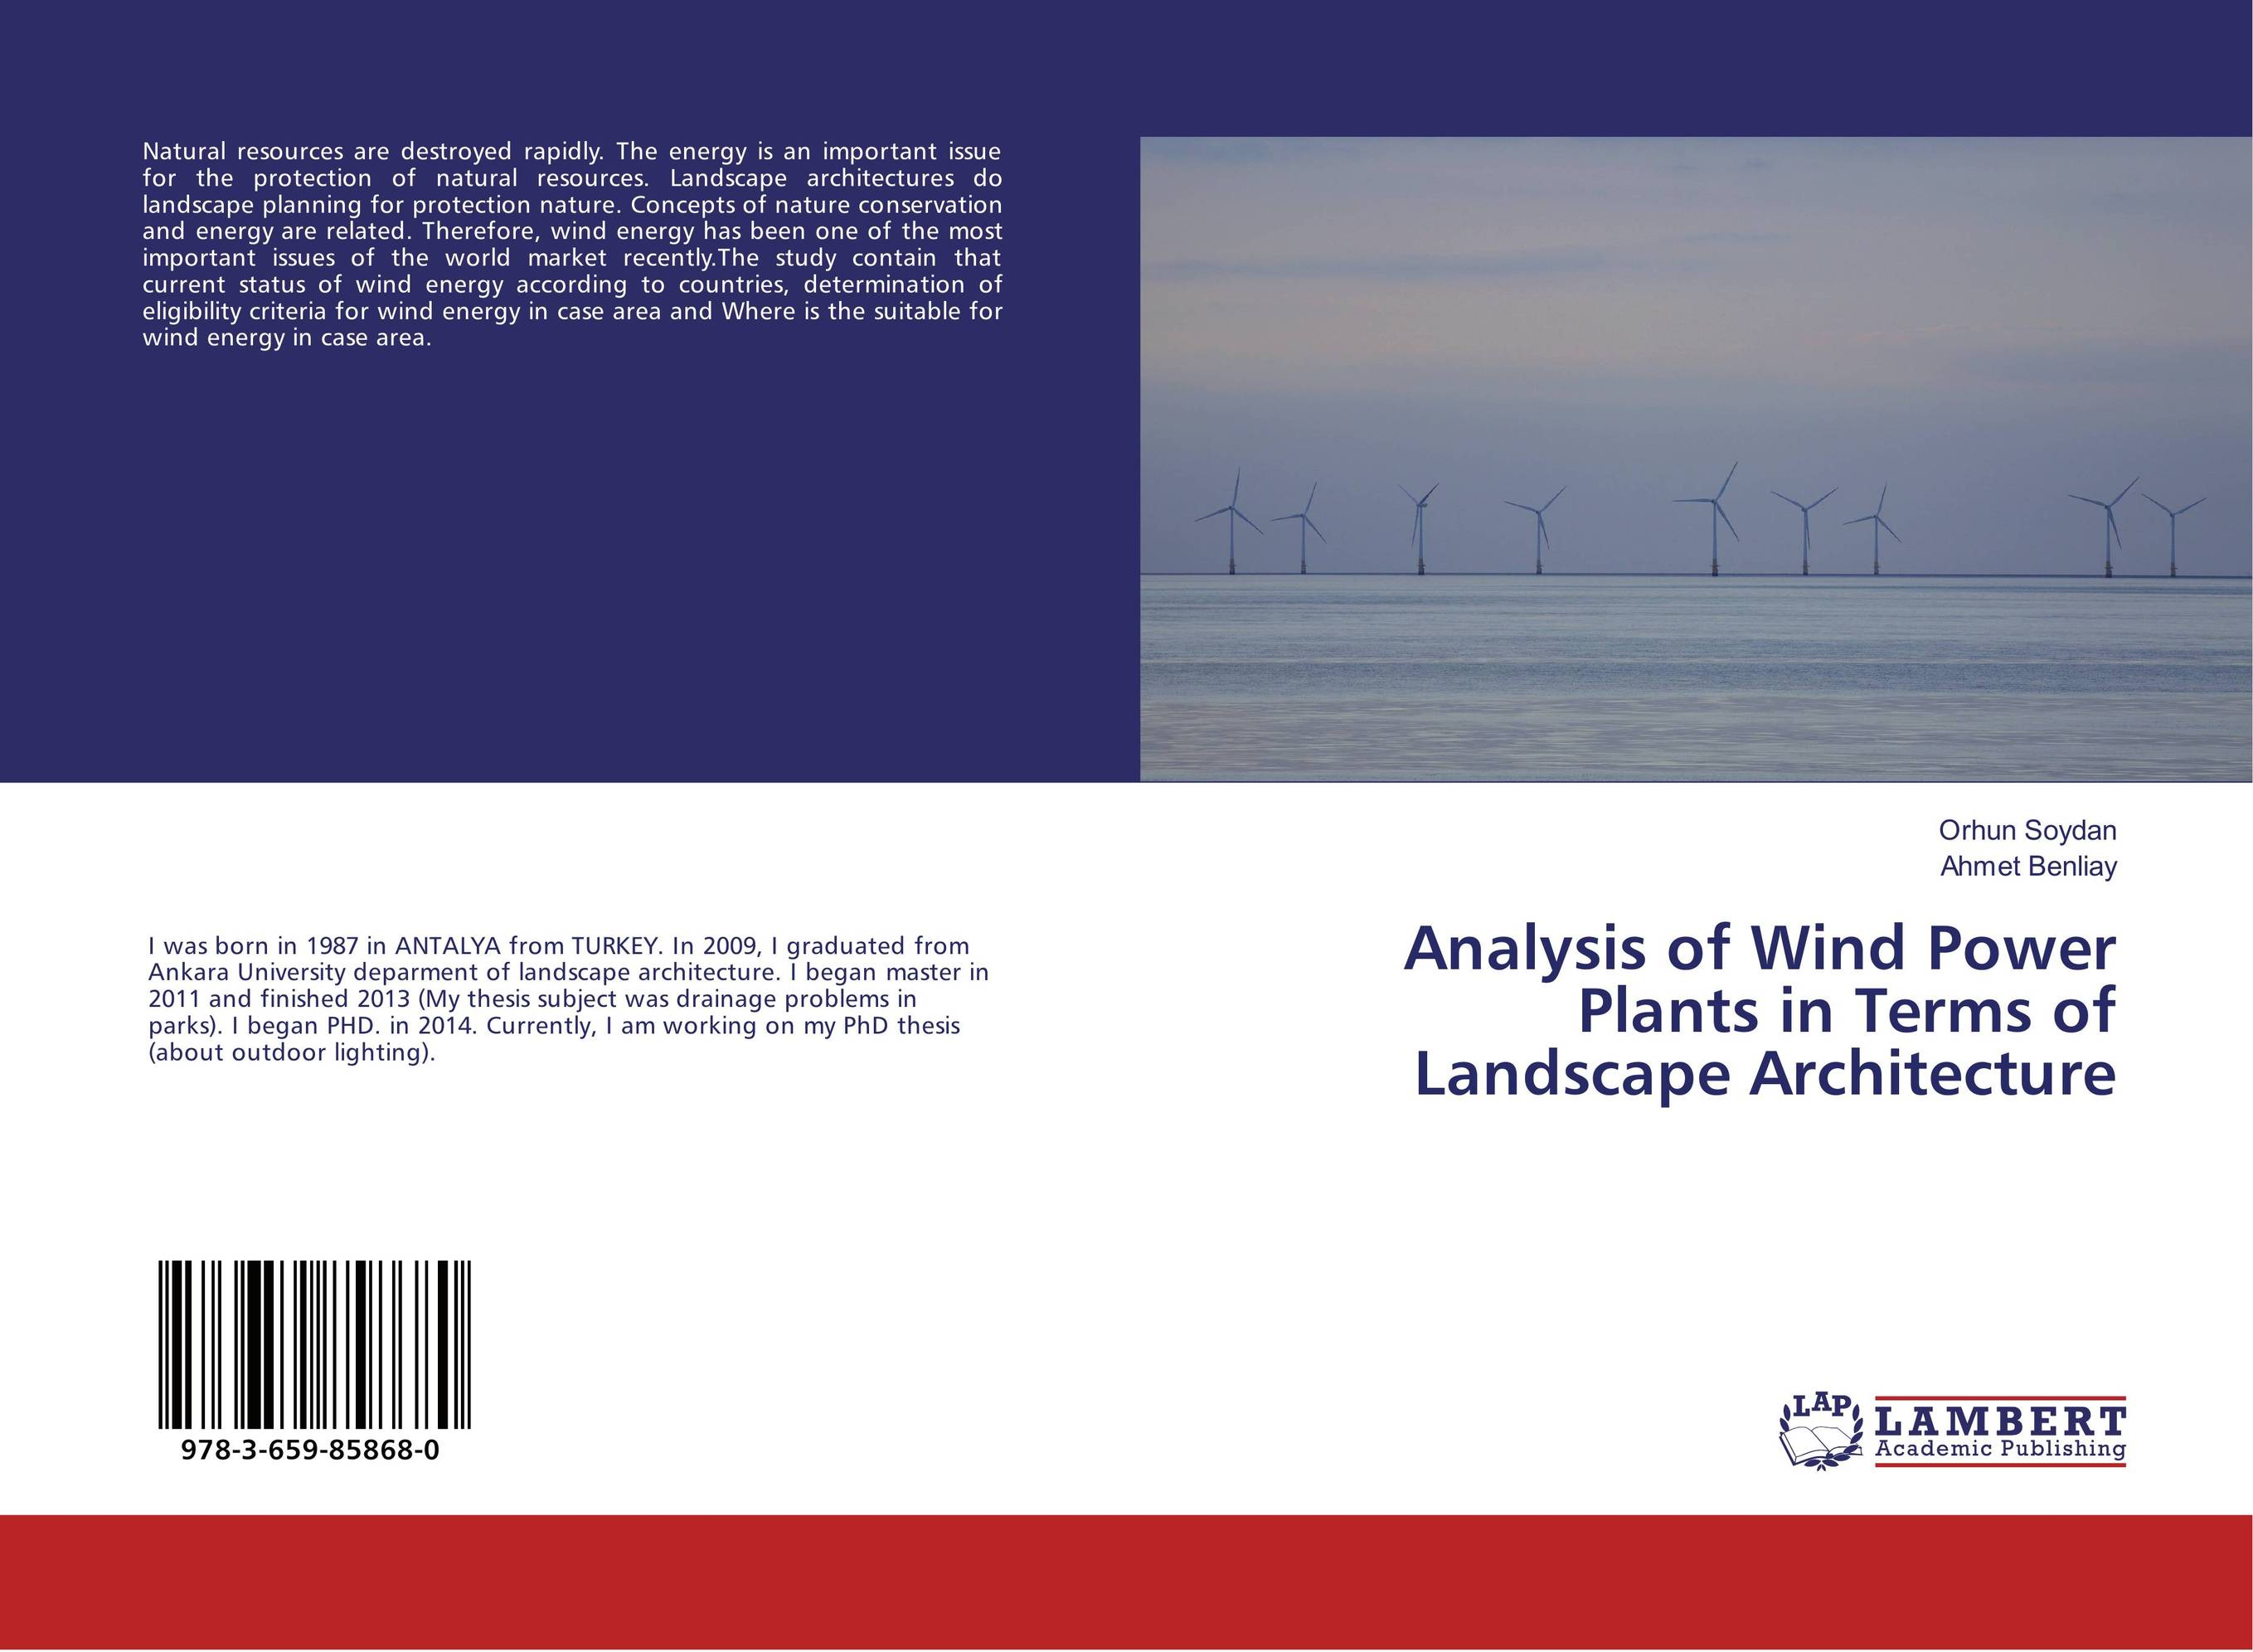 Analysis of Wind Power Plants in Terms of Landscape Architecture